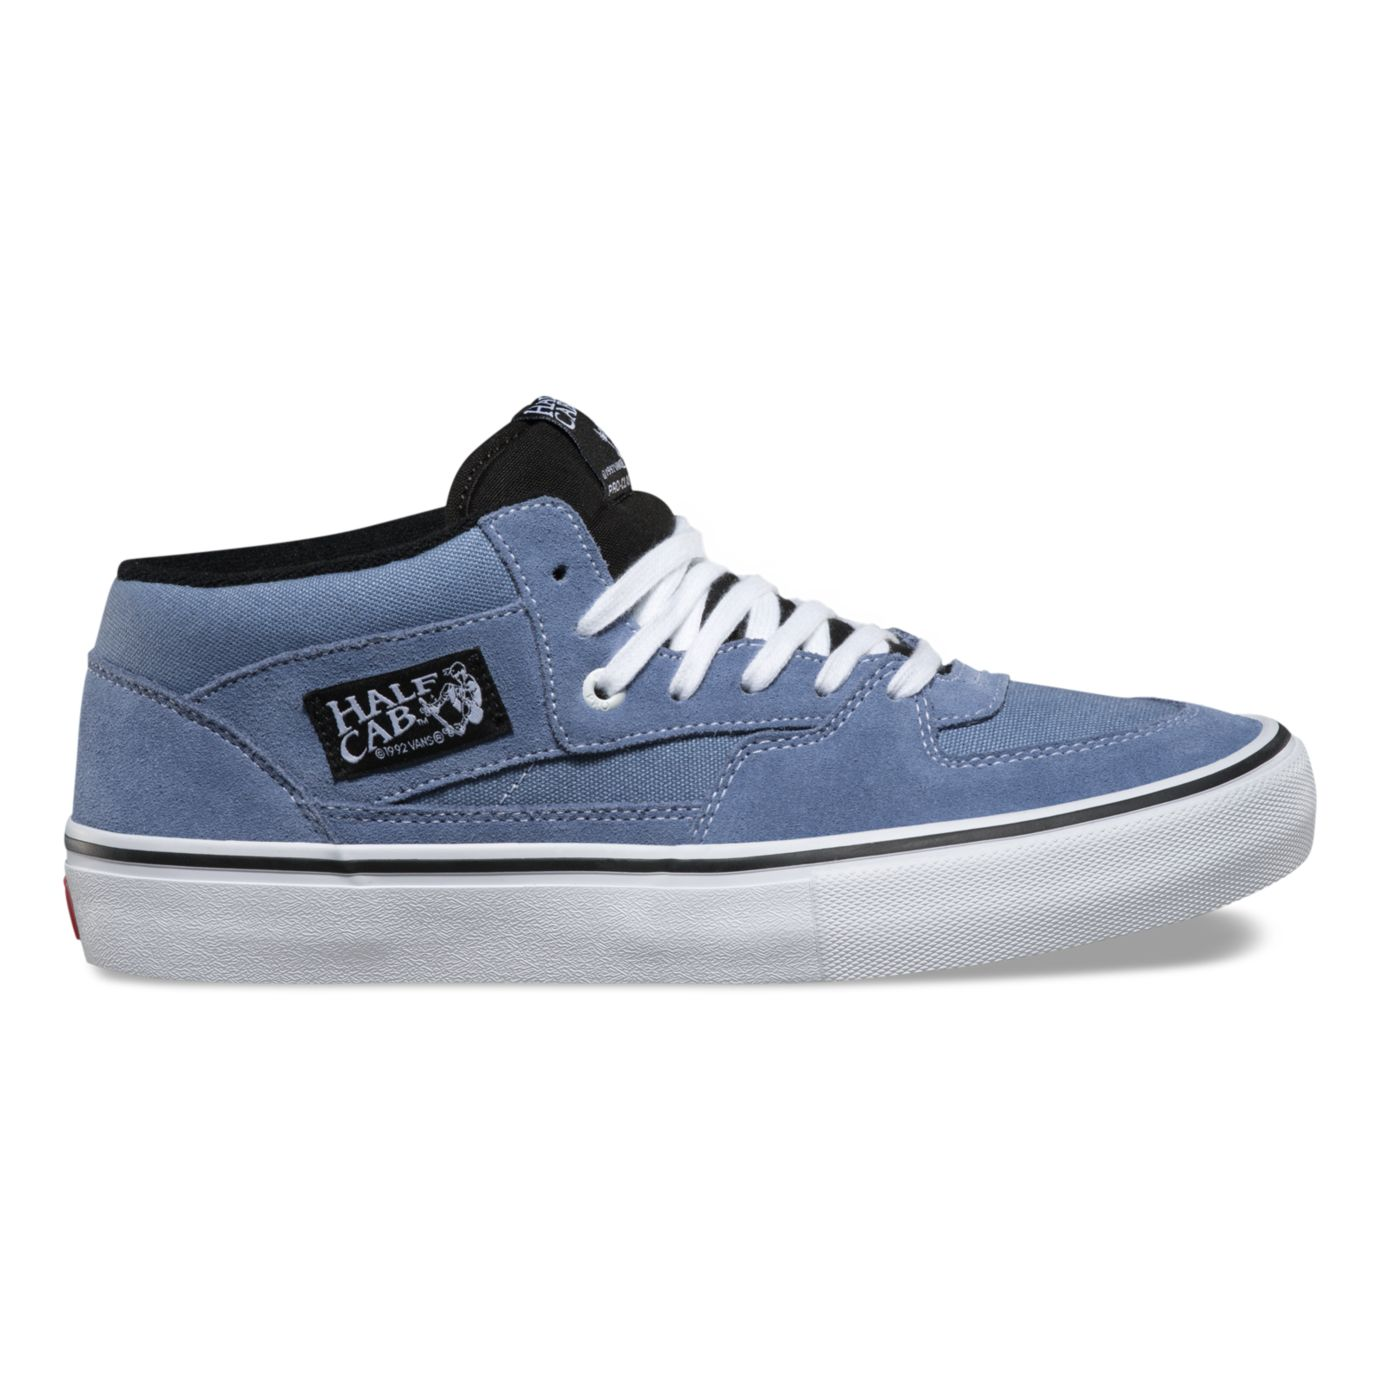 3fcbcfcb1ddee9 Iconic Skate Shoe Designs Resurrected for Vans  50th Anniversary Pro  Classics Collection